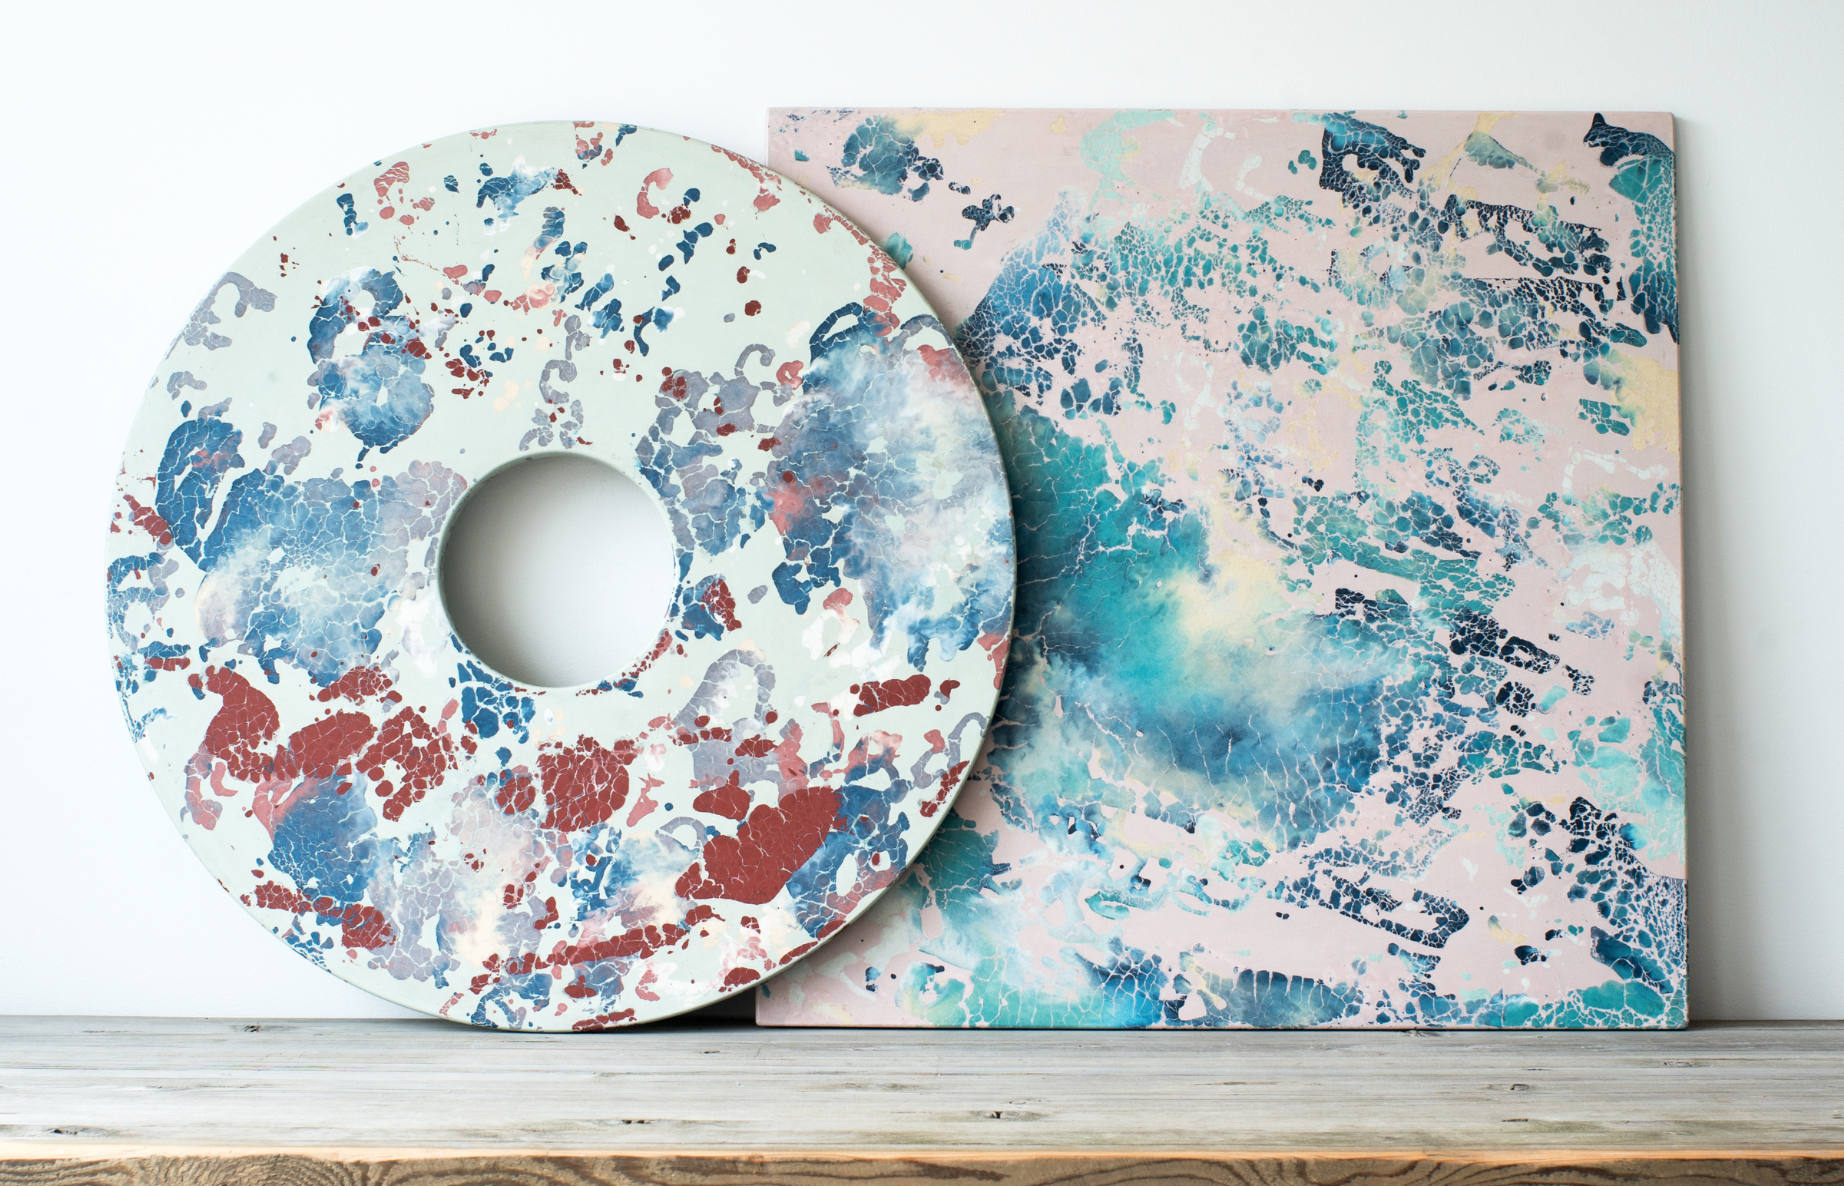 Oracle is a technique for creating marble like patterns in vibrant colours in cast concrete. Concrete cat is the only studio in the world with the technology to create this pattern in concrete. The piece on the right makes me want to head to my studio and create something in this palette.